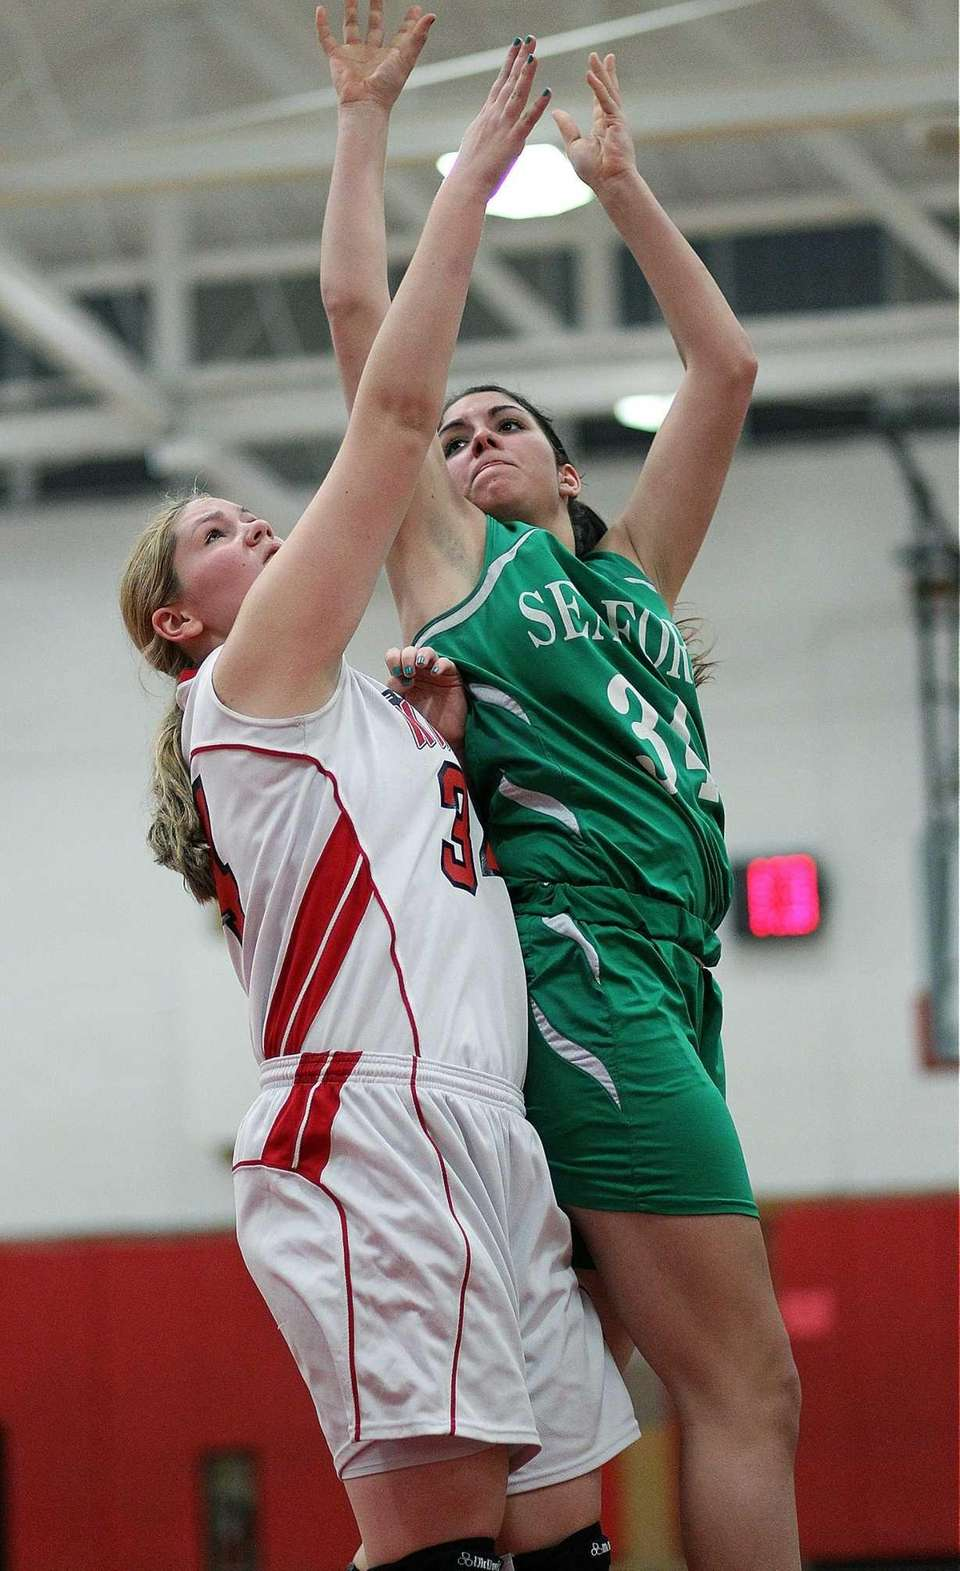 Floral Park's Lorraine Hickman defends against Seaford's Jessica